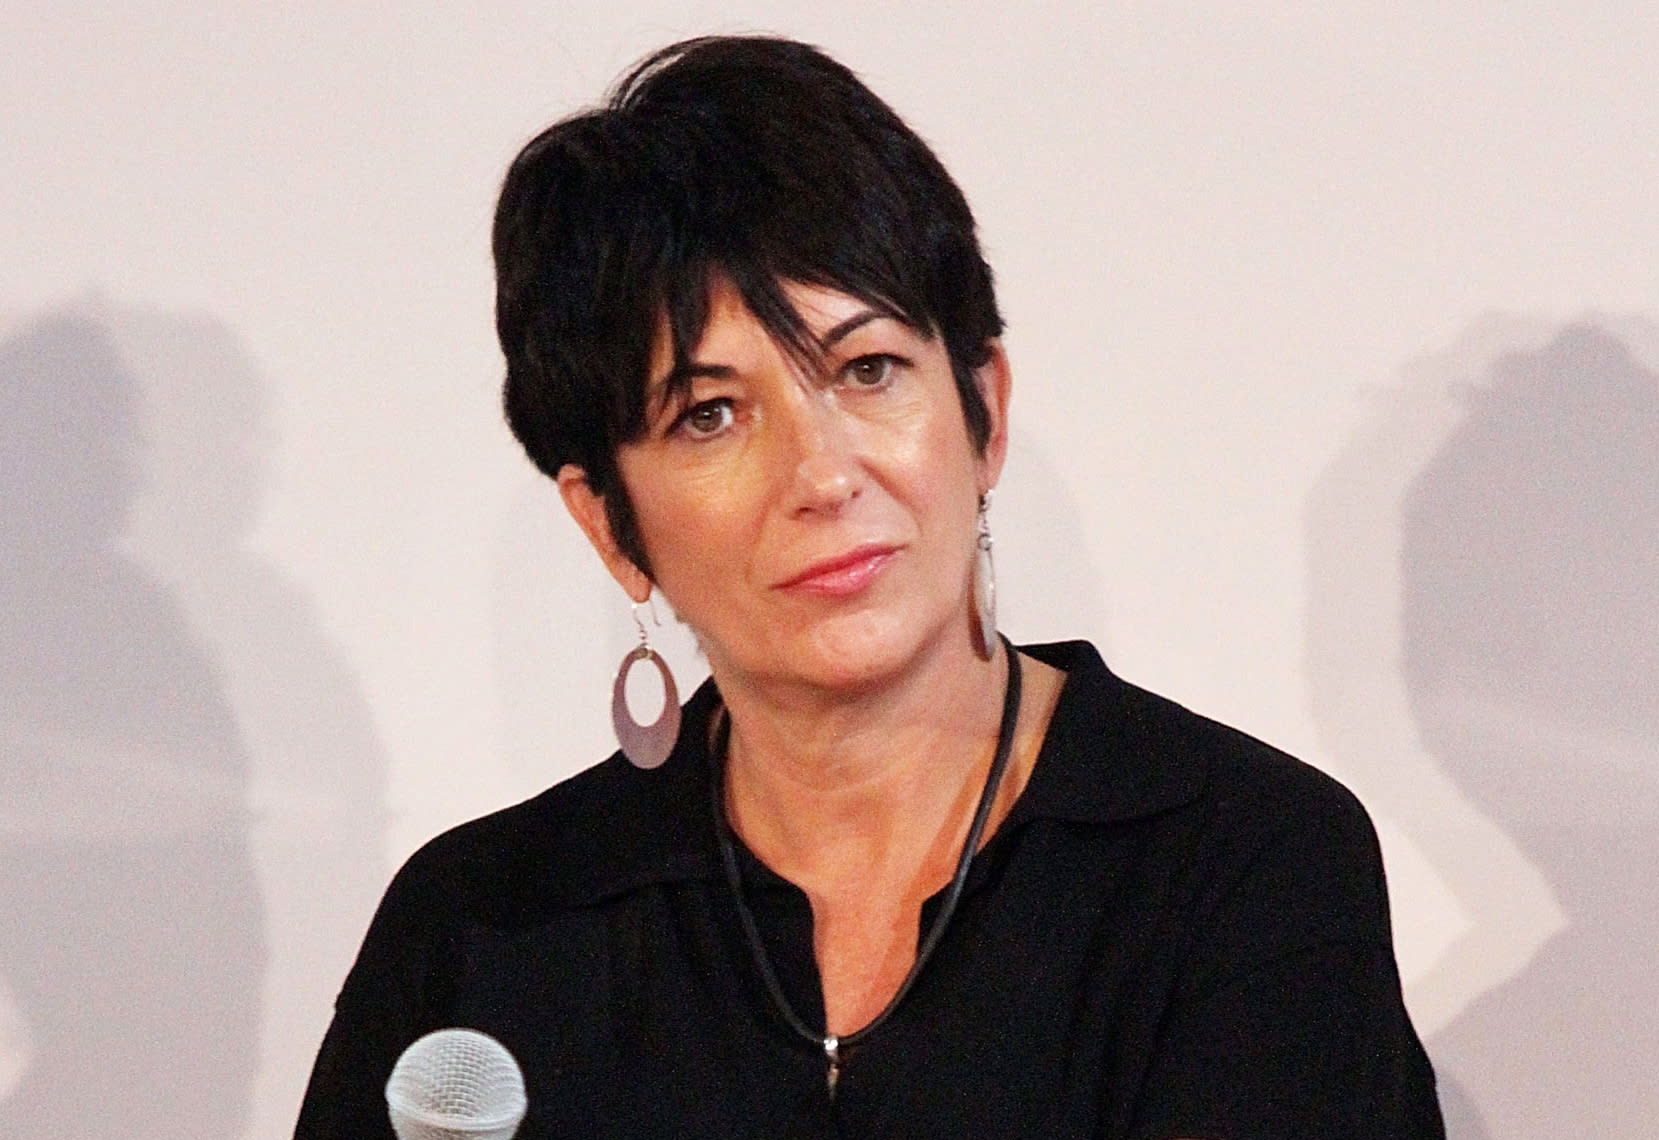 People News Roundup: Ghislaine Maxwell quarantined after jail staff member tests positive for COVID-19; Britain's Duchess Meghan speaks about miscarriage in break with royal reserve and more